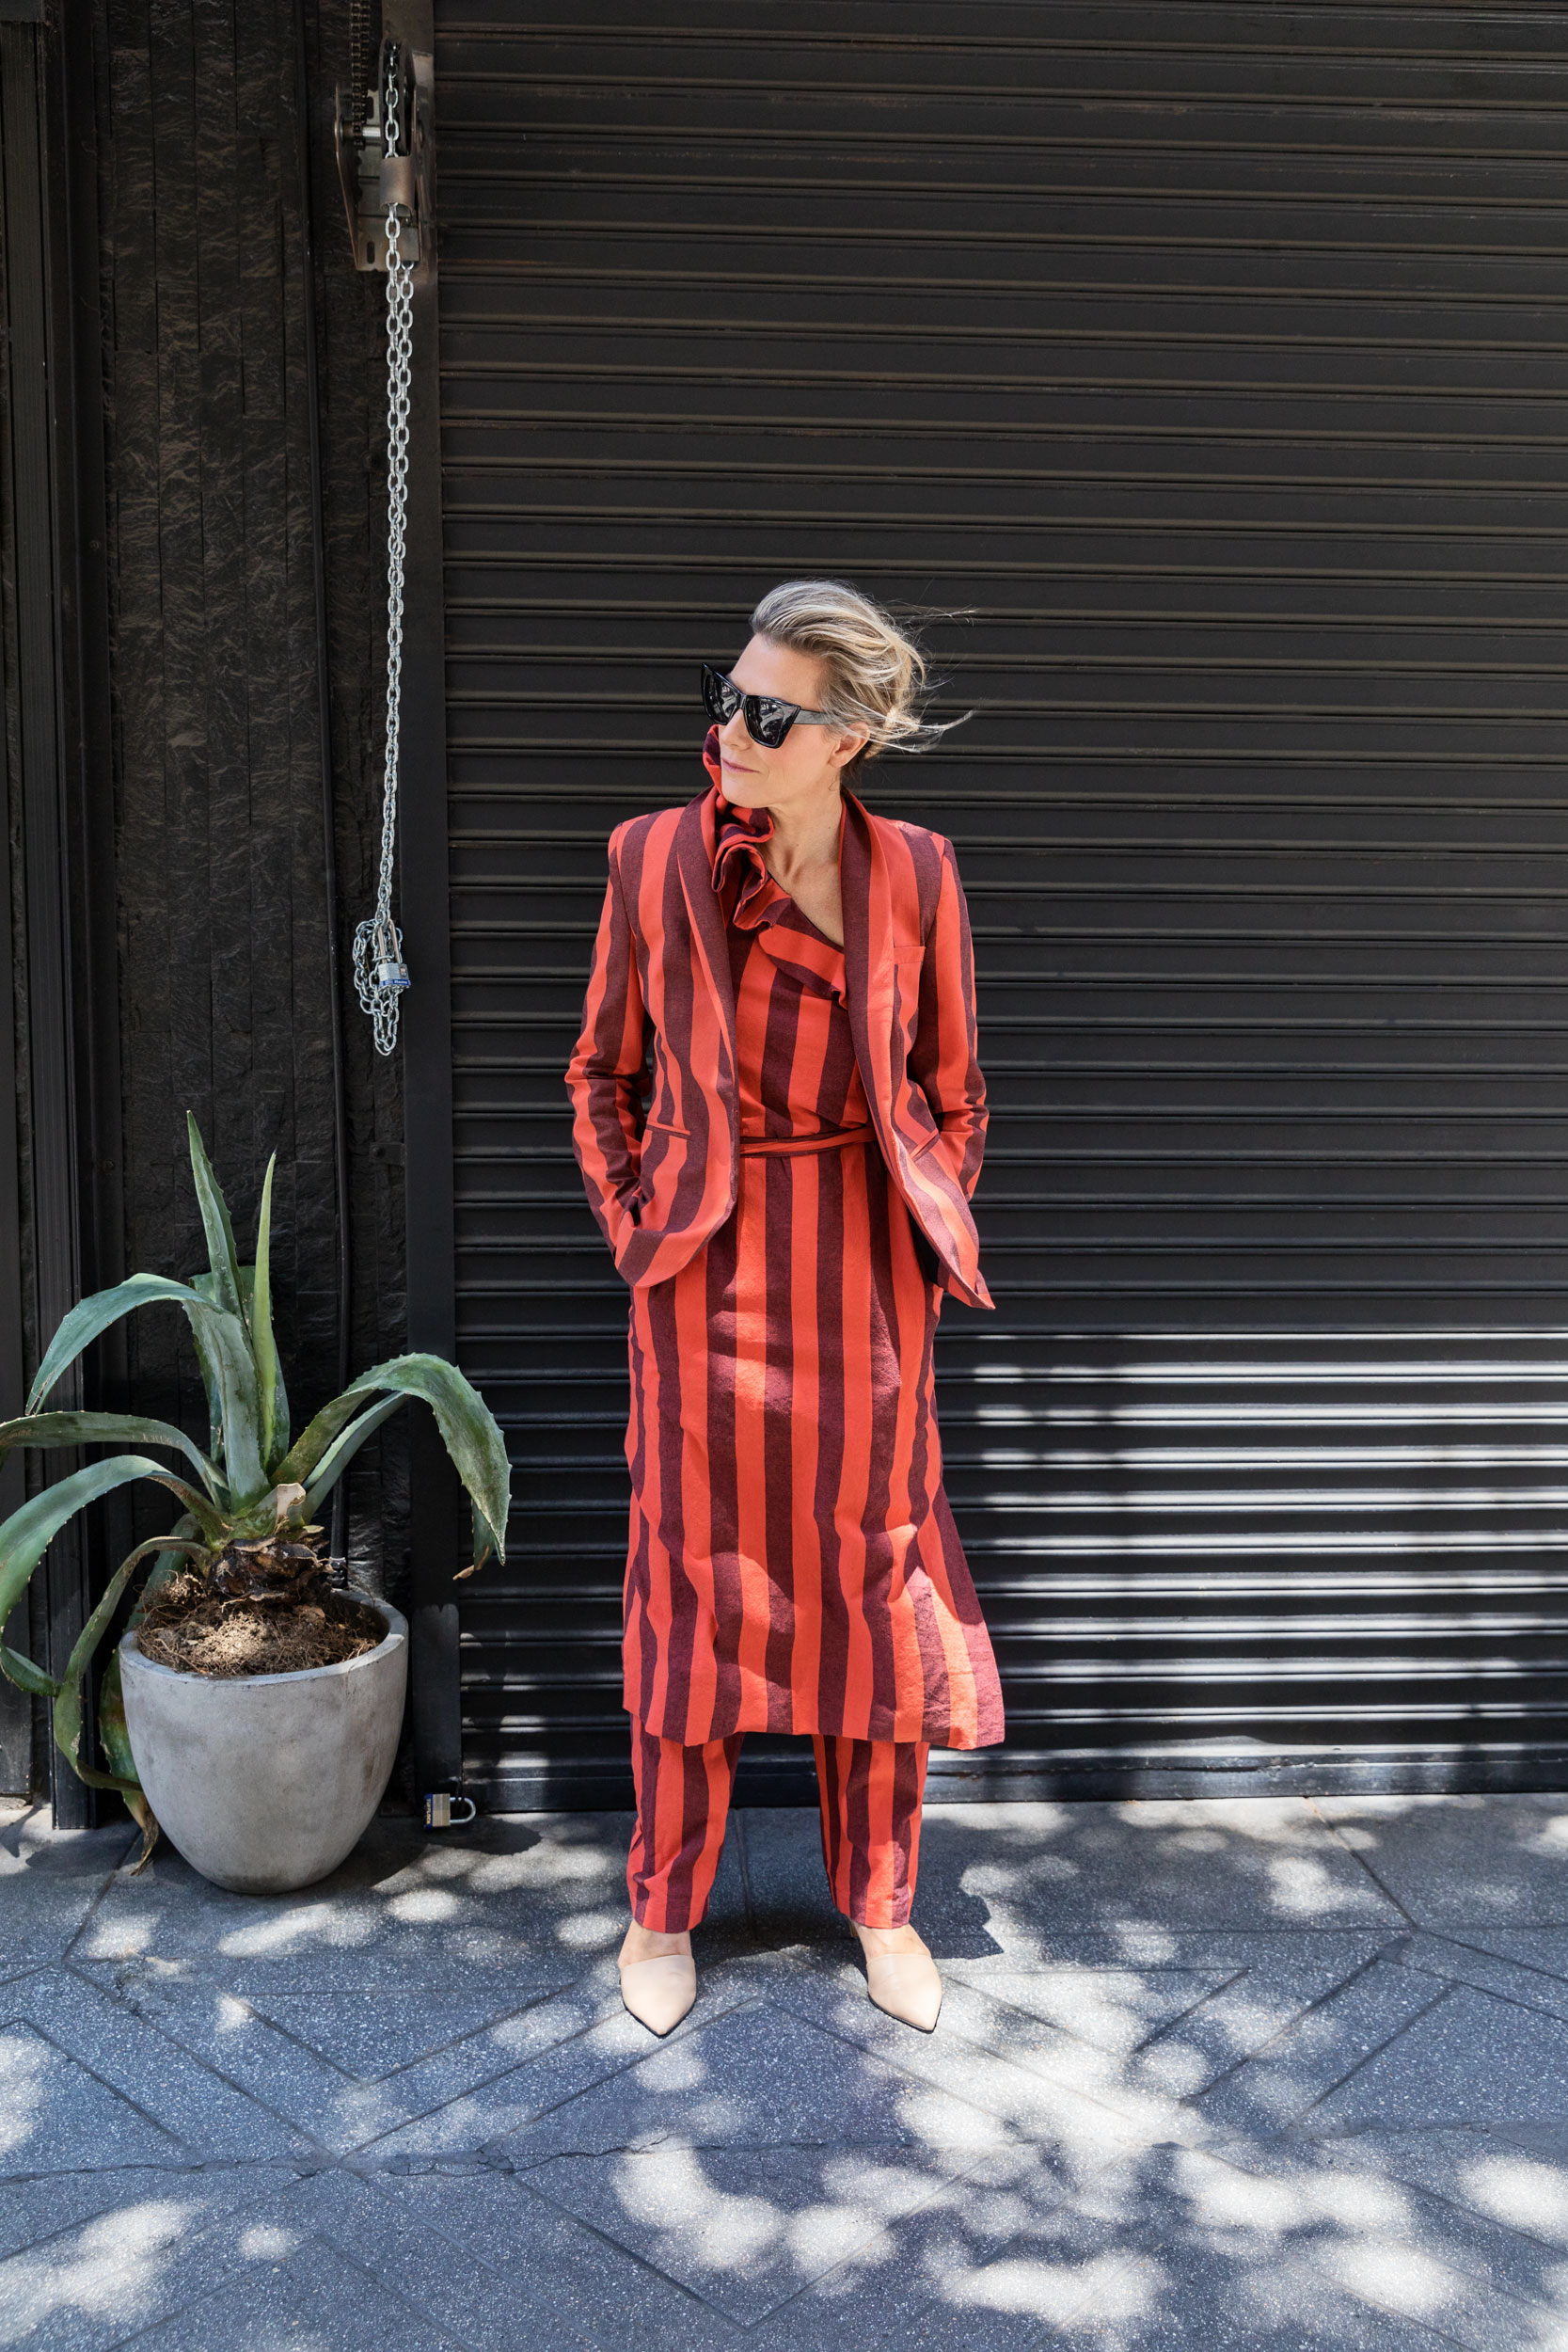 Woman wearing an orange stripped suit on a street sidewalk. Kim Genevieve Los Angeles Portrait Photographer